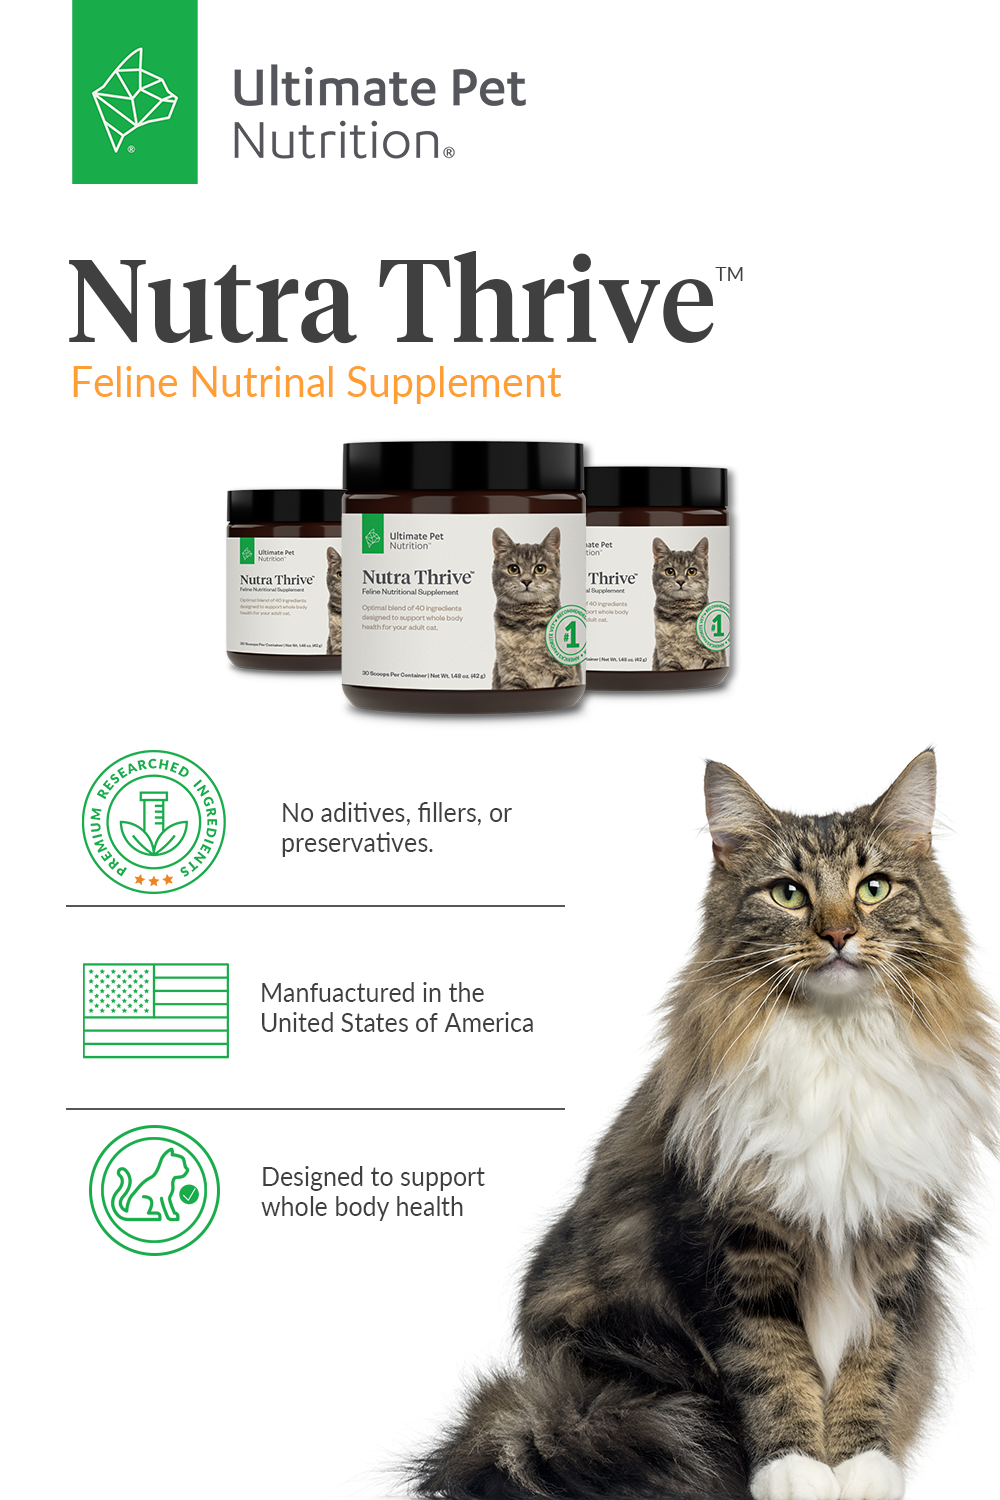 Nutra Thrive Cat Ultimate Pet Nutrition in 2020 Animal